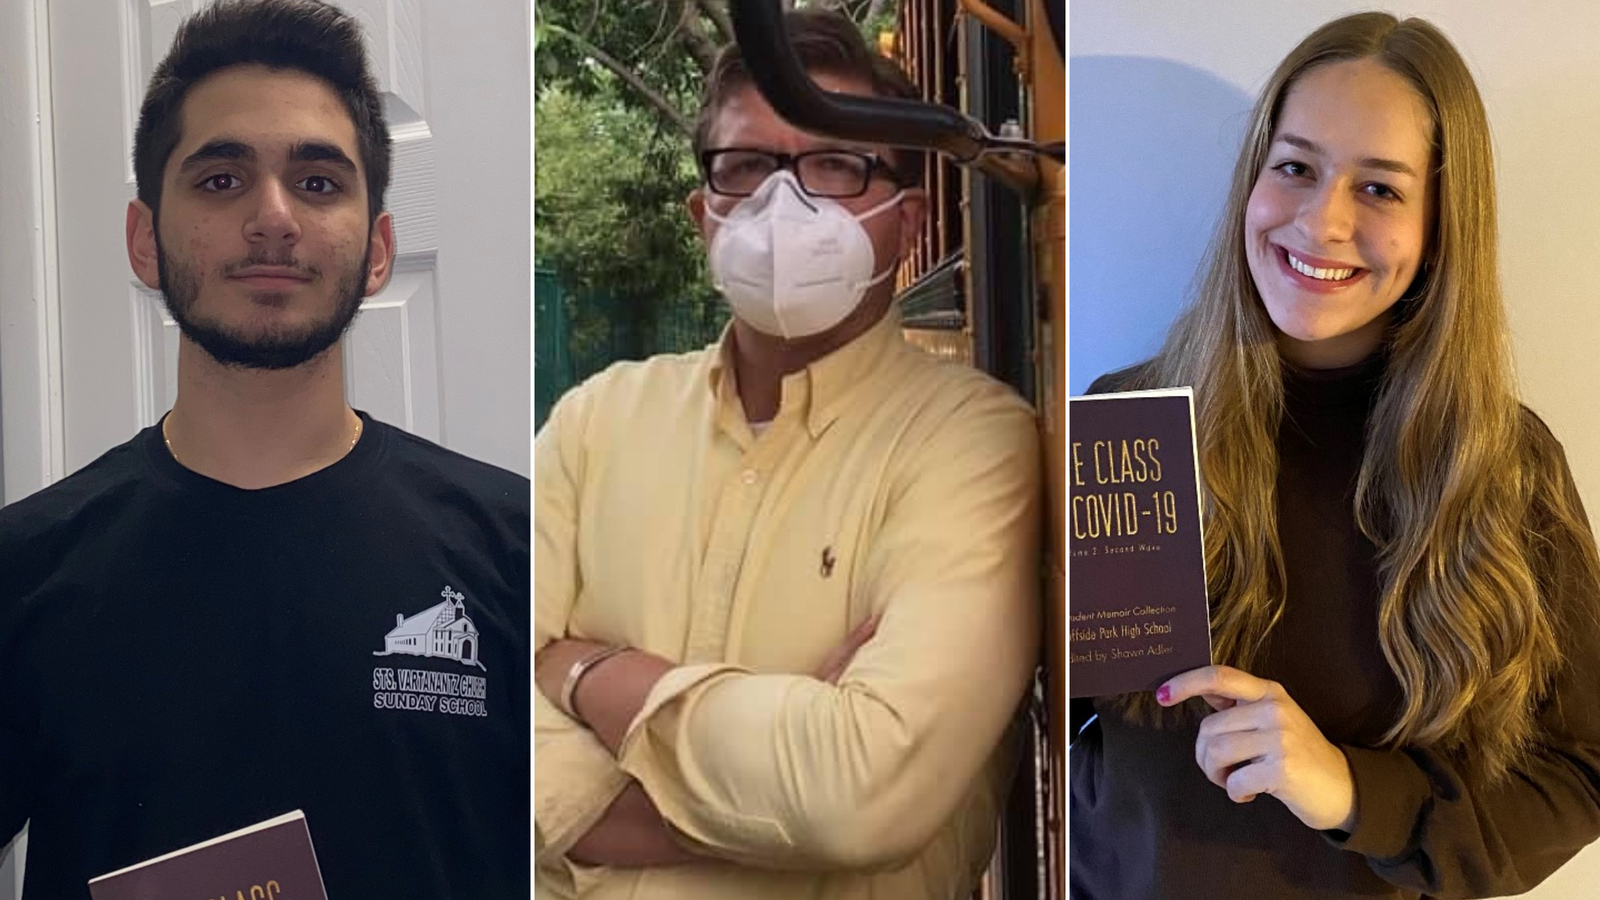 These high schoolers turned their tough experiences during the pandemic into powerful memoirs